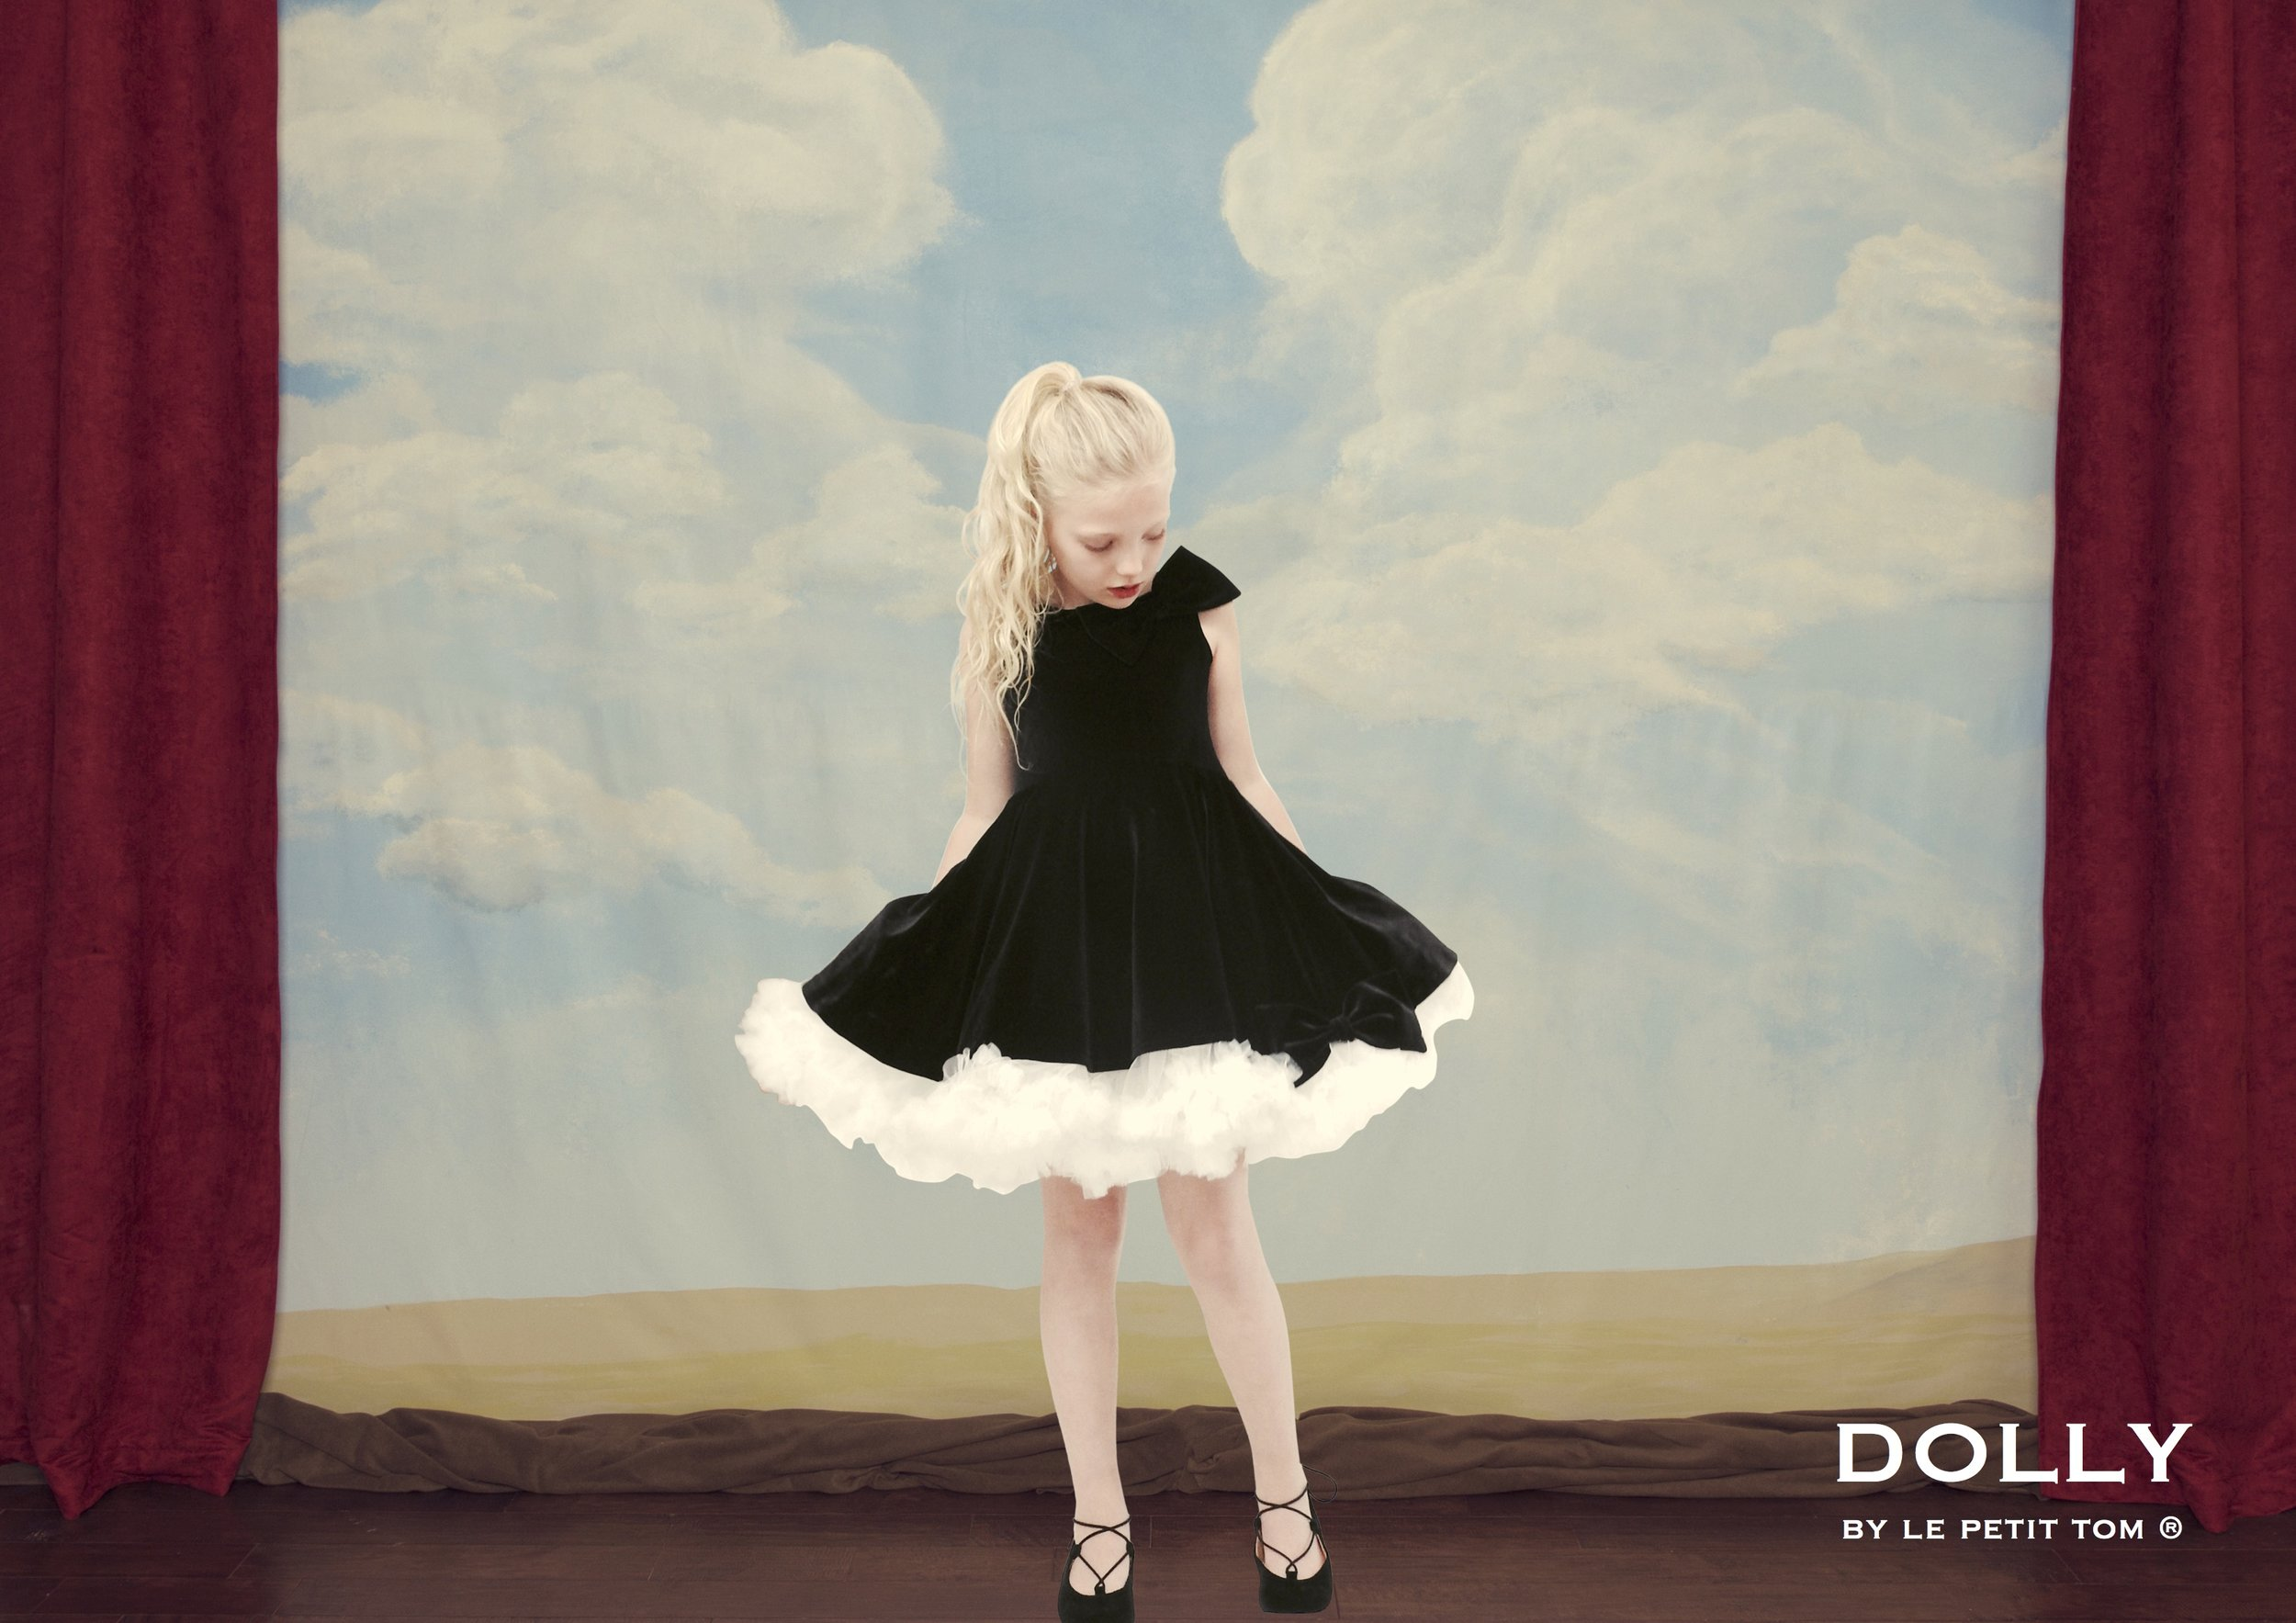 Dolly by le petit tom fandeluxe Images